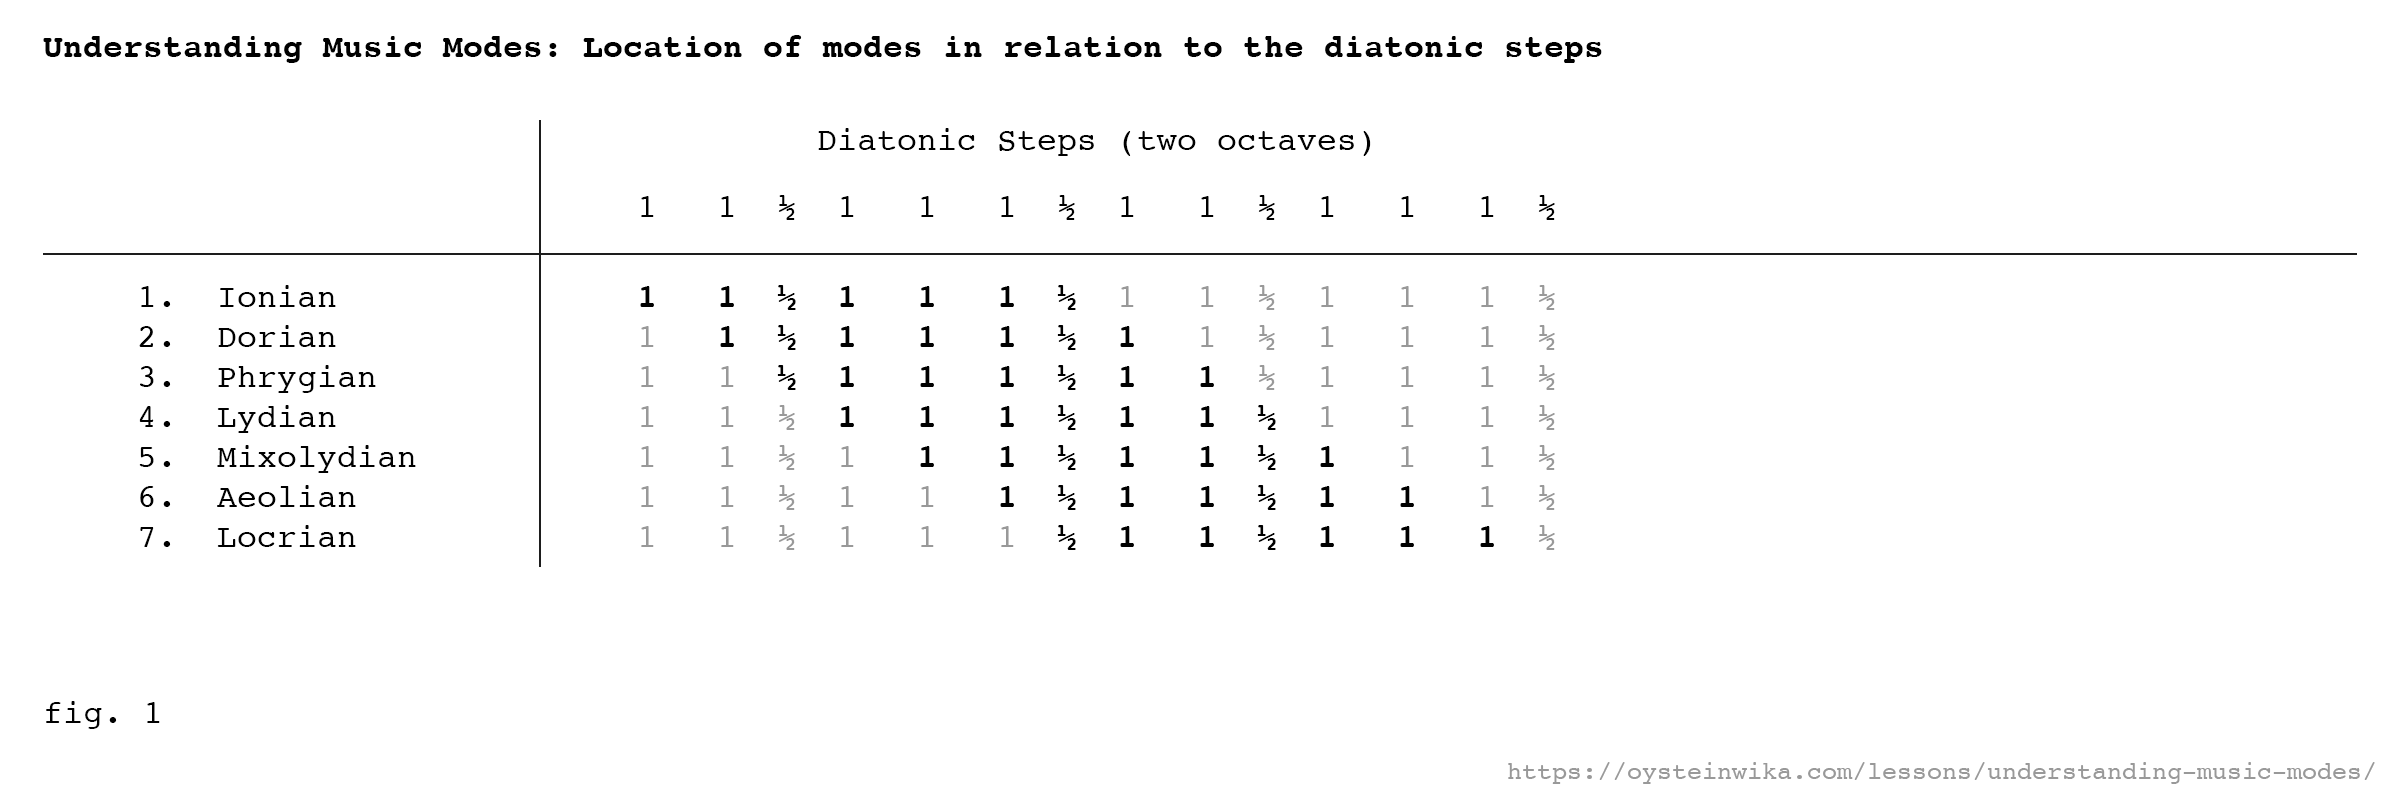 Fig. 1 - Understanding Music Modes: Location of modes in relation to the diatonic steps